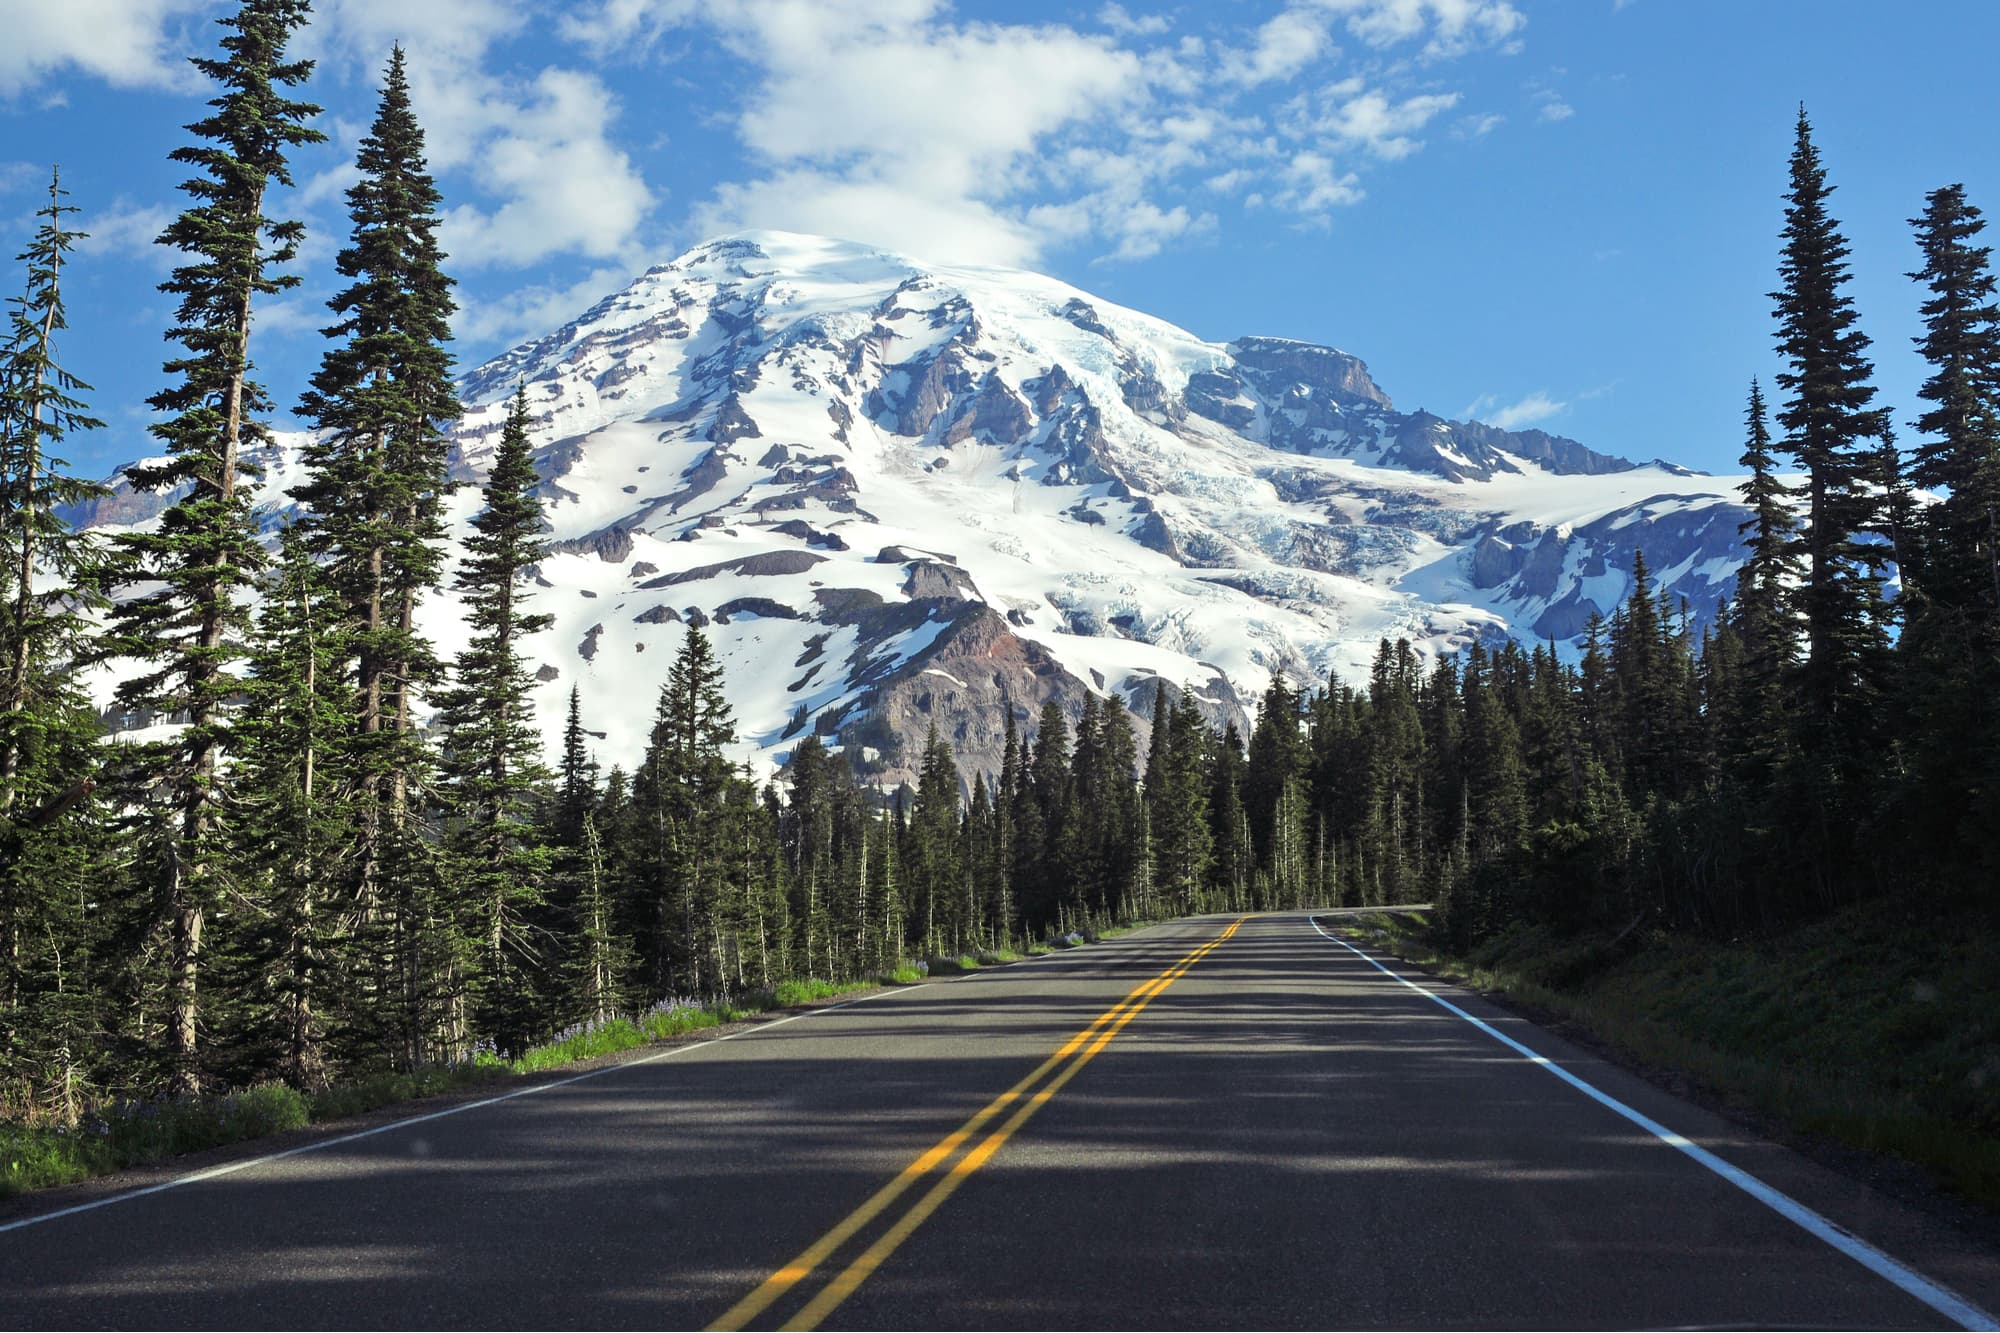 mount rainier a seen from a road in washington